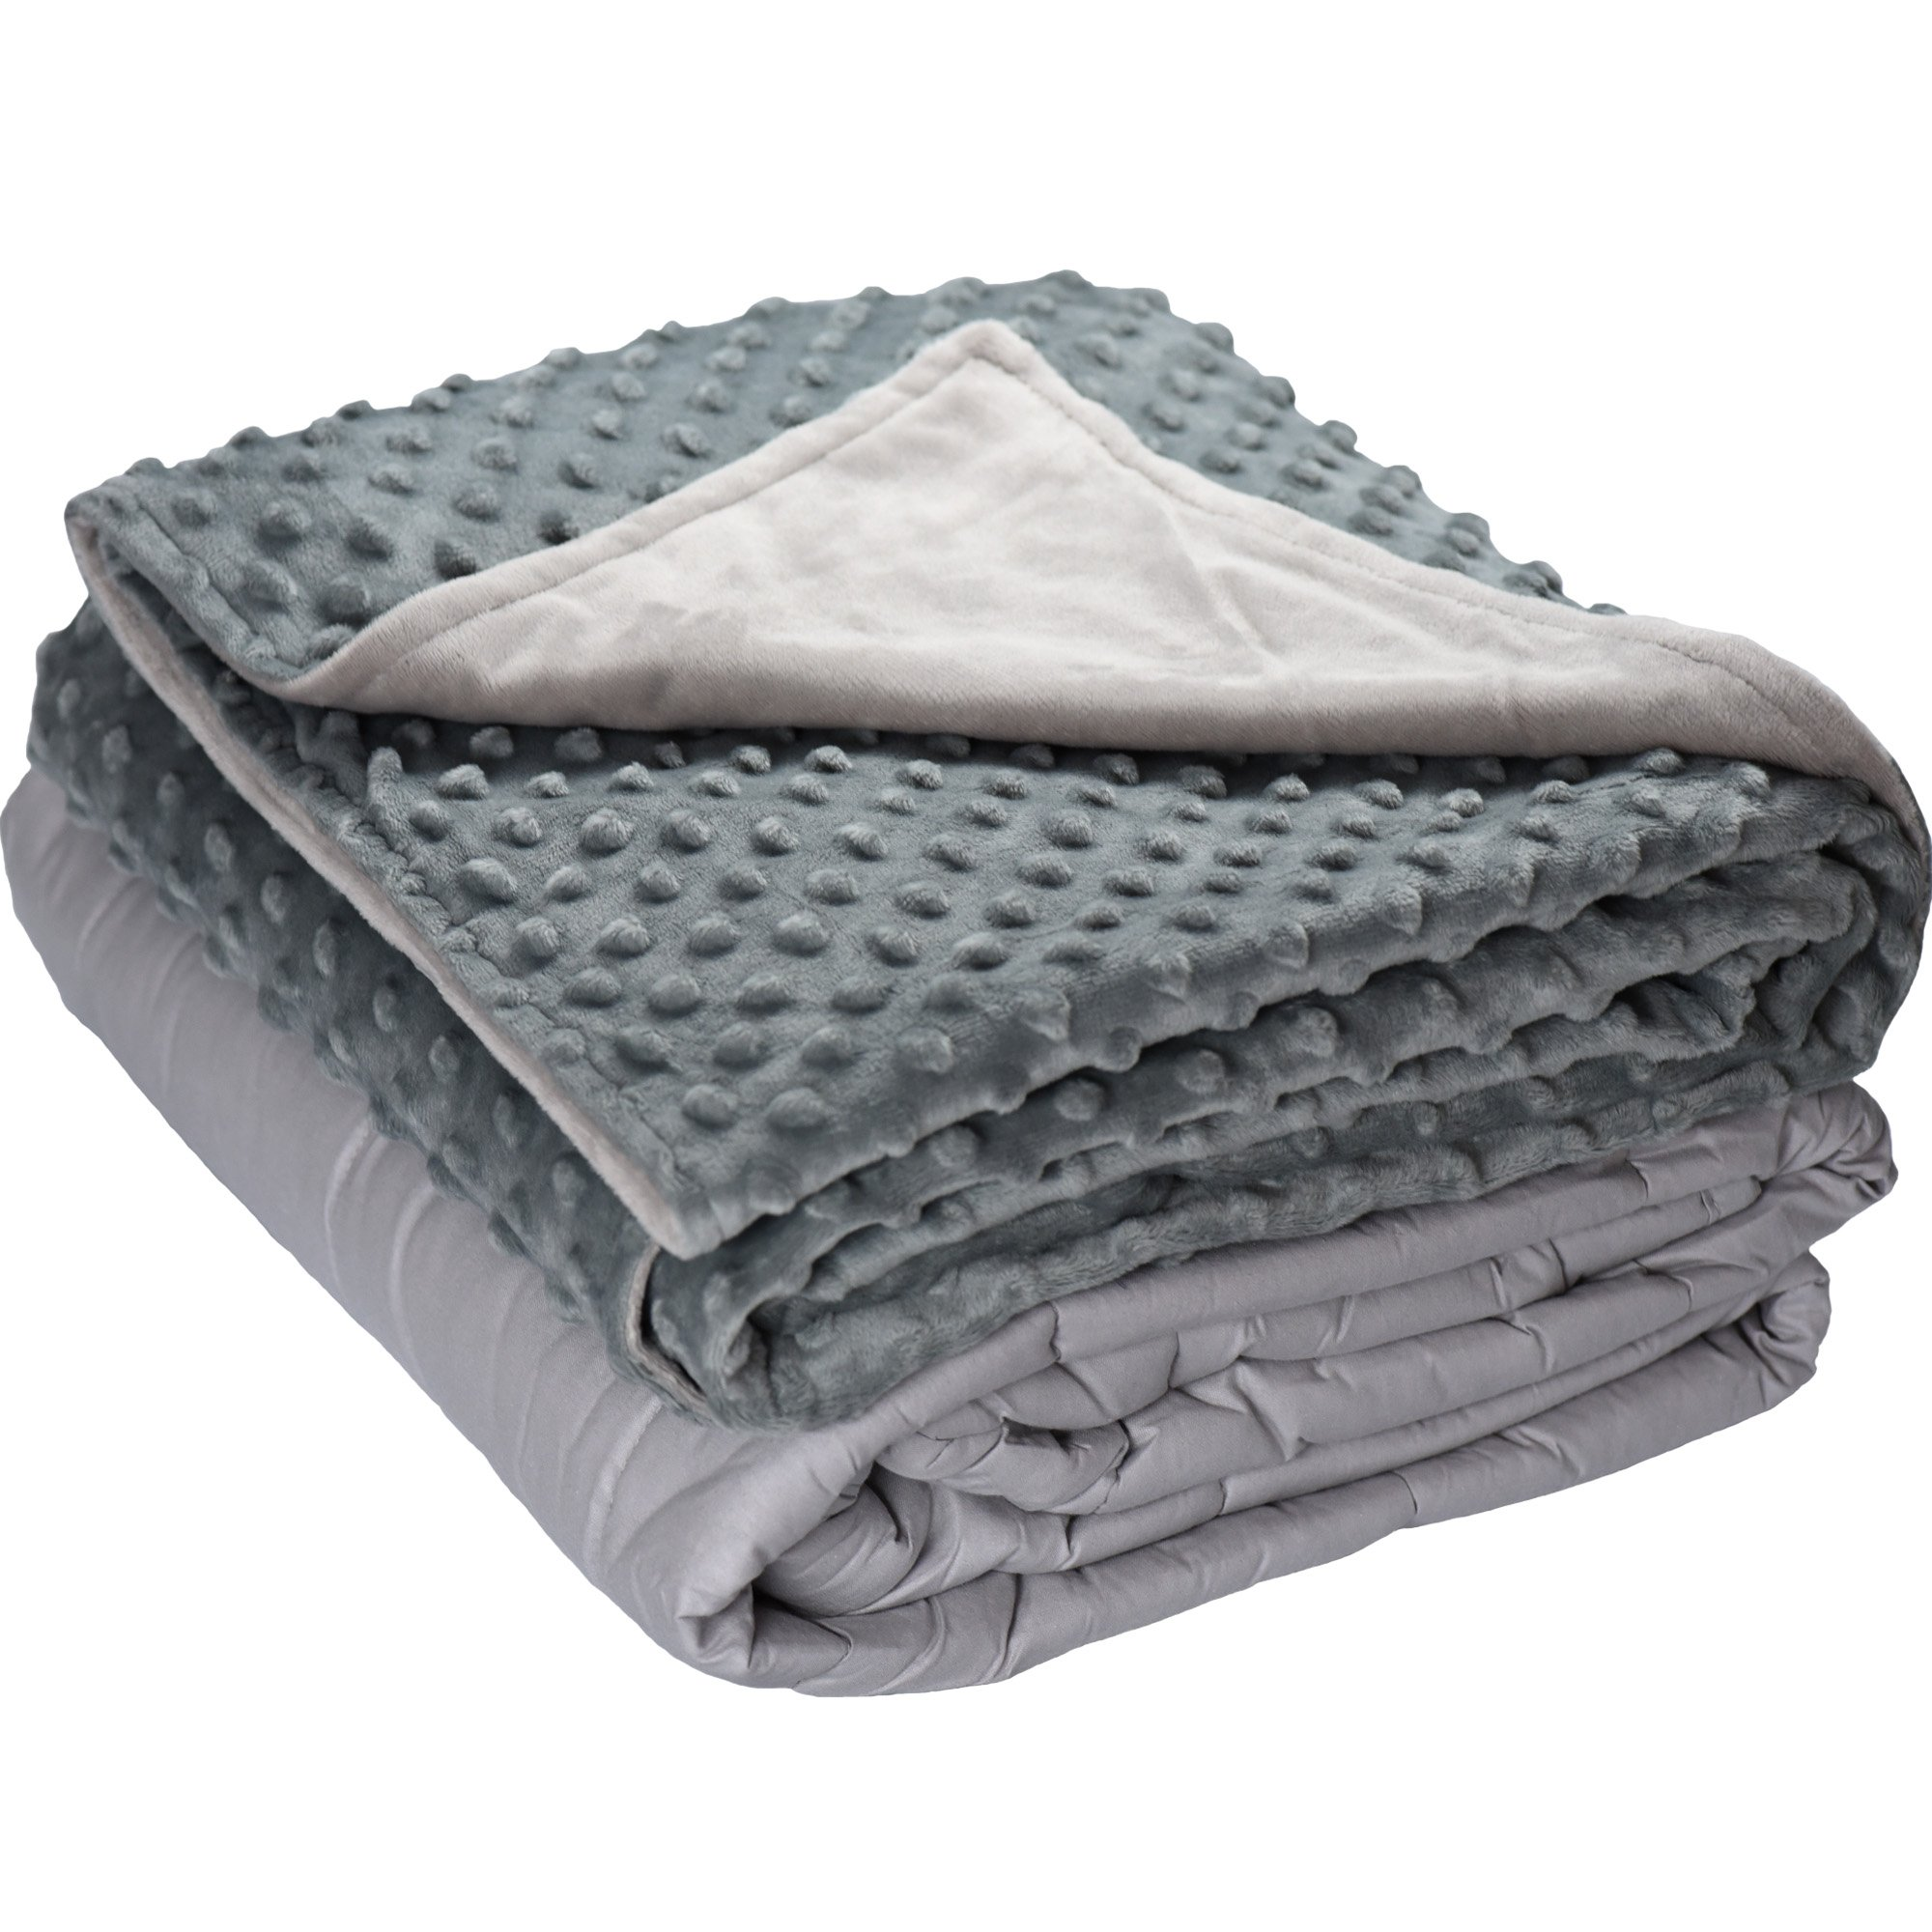 5lb Weighted Blanket with Dot Minky Cover for Kids 40-60lb individual.Help Children with Sleep Issues Anxiety Autism Stress (Inner Light Gray/Cover Gray & Light Gray, 36''x48'' 5 lbs)